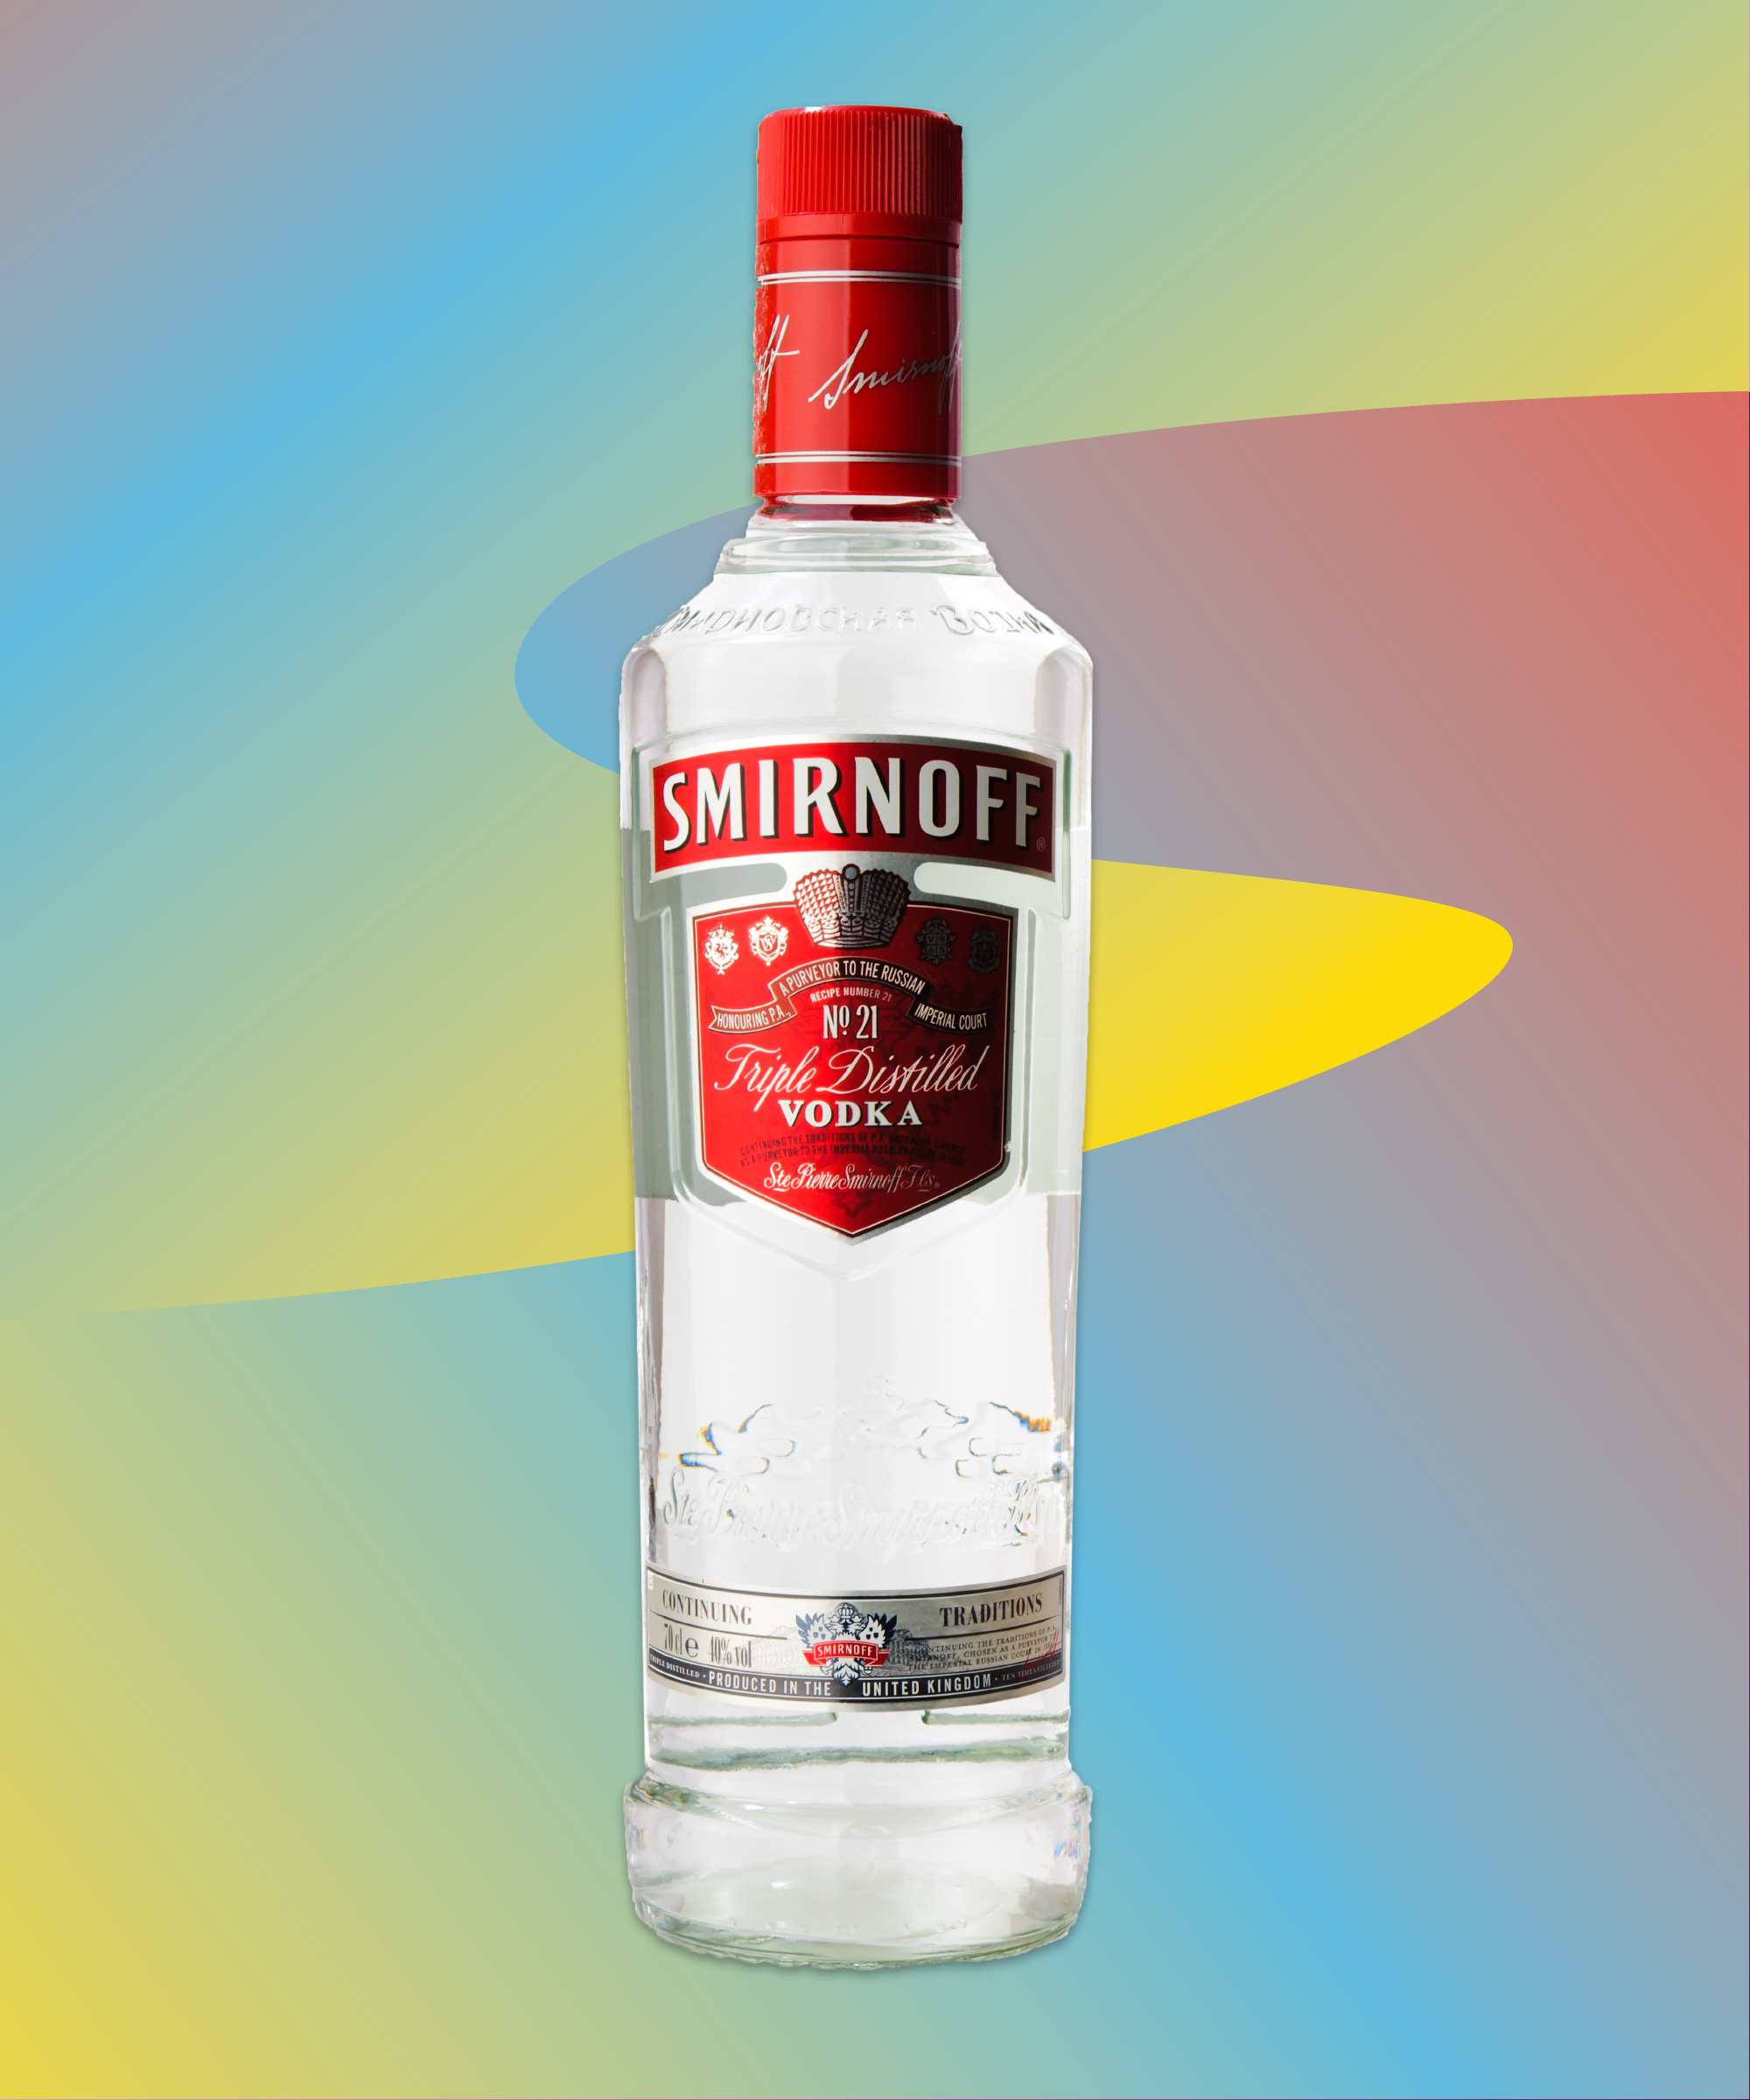 About the practical benefits of vodka ... in everyday life 19